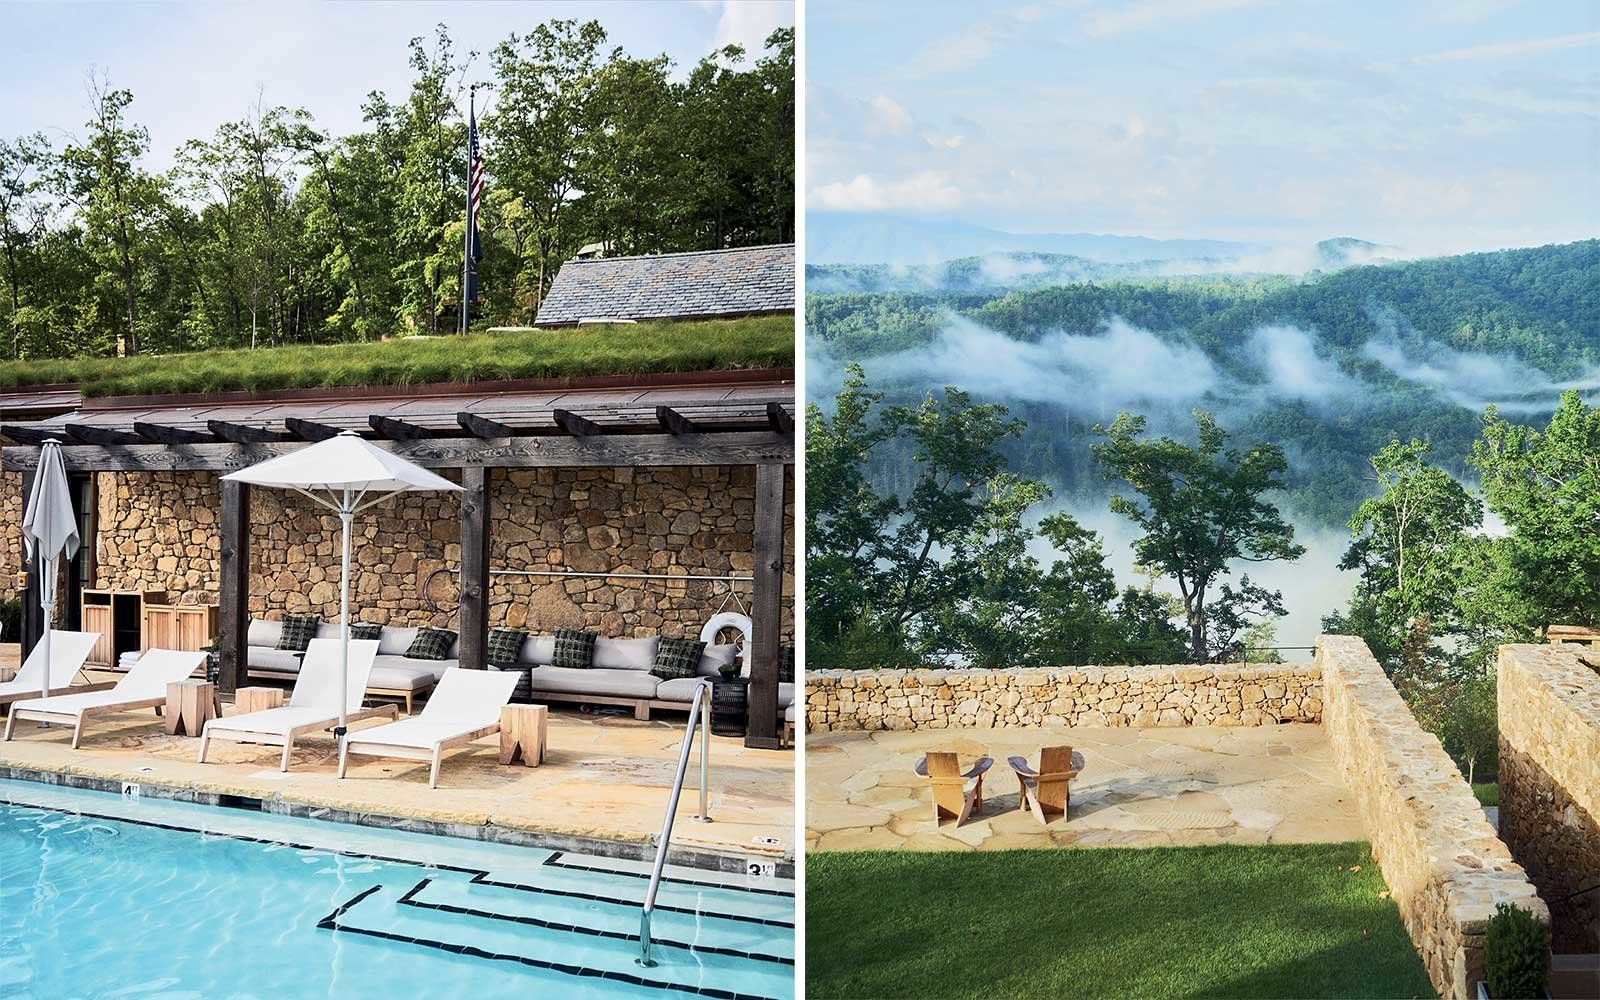 Blackberry Farm, a resort in Tennessee's Great Smoky Mountains, recently debuted Blackberry Mountain, a wellness-focused resort nearby.